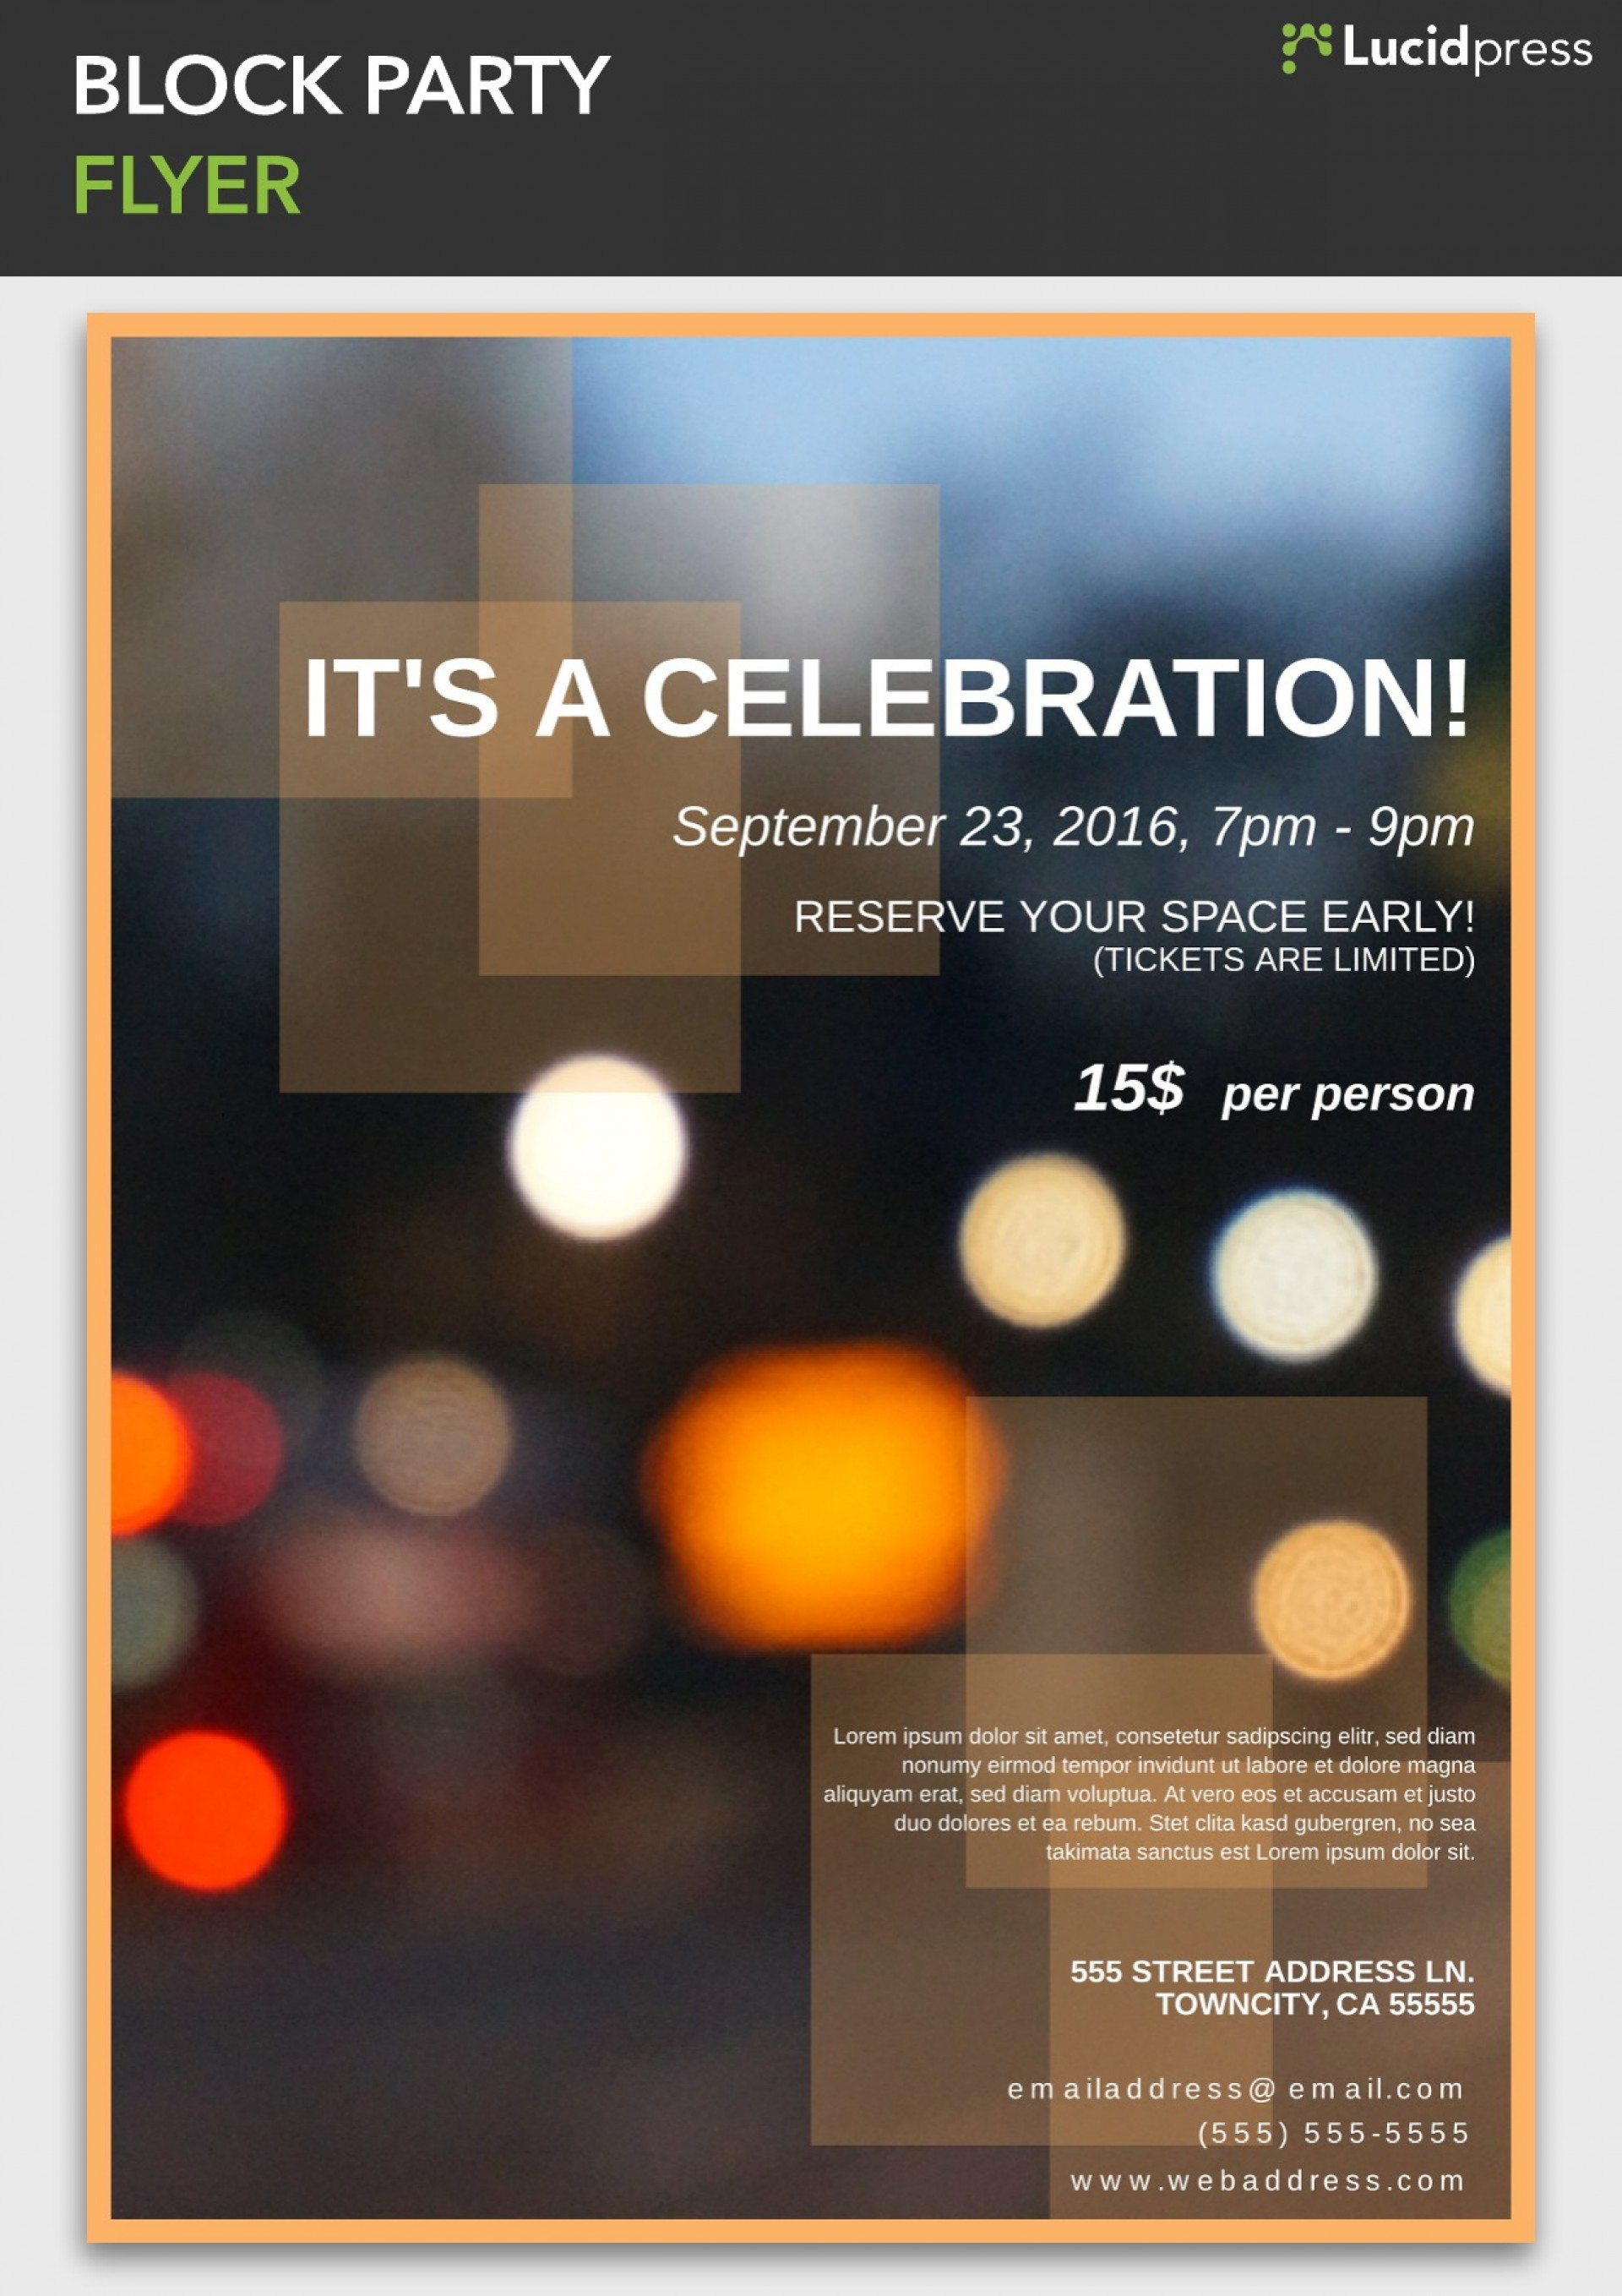 006 Incredible Block Party Flyer Template Inspiration  Templates Free1920